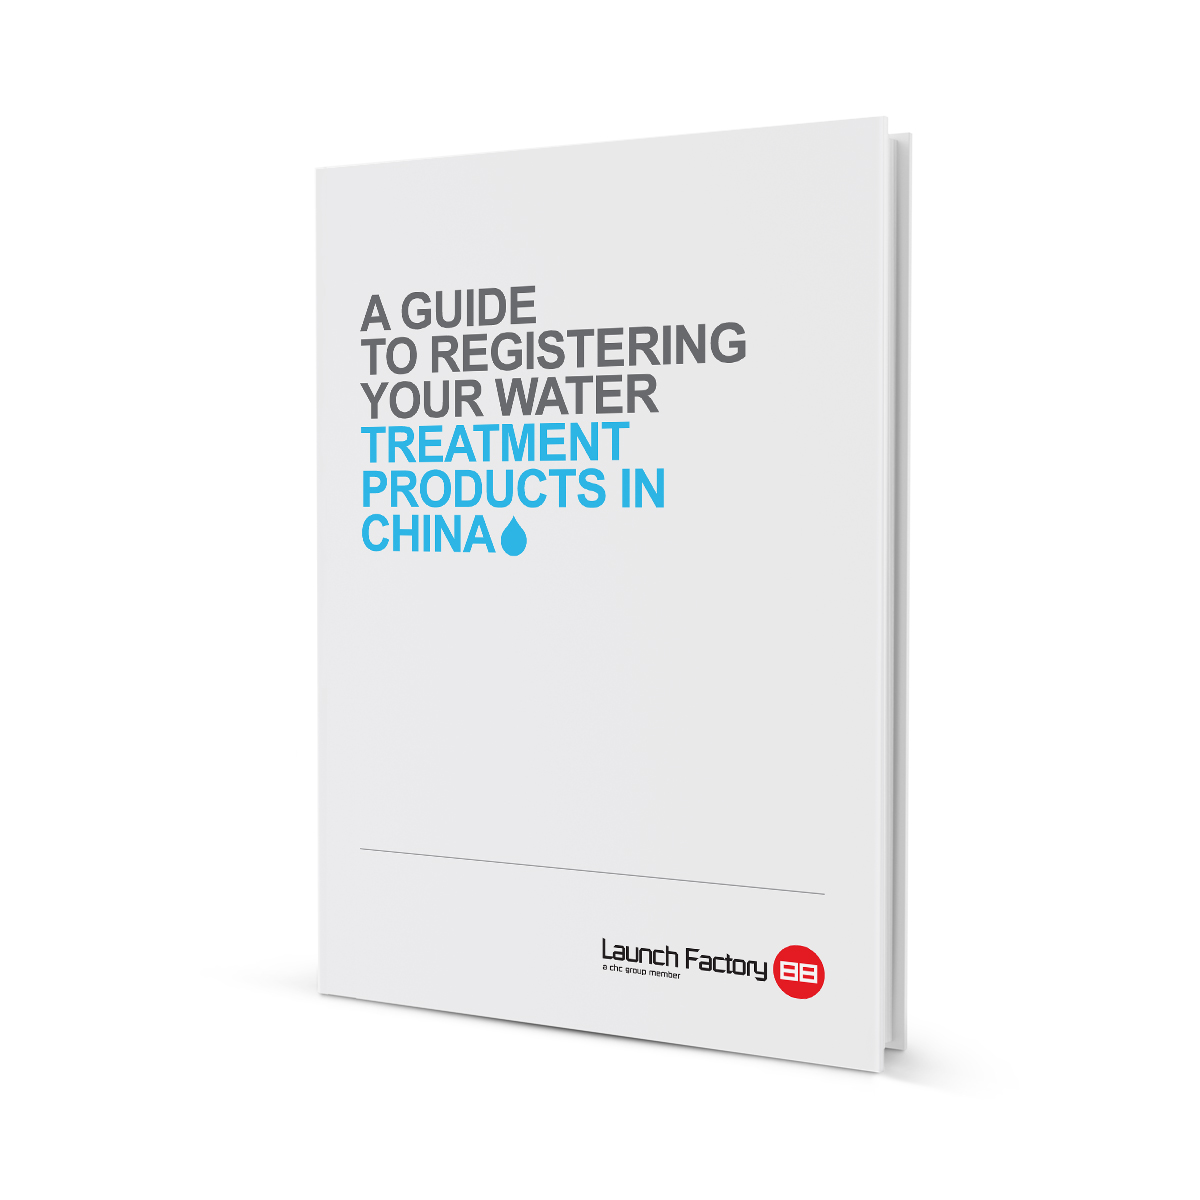 Water treatment product registration in China